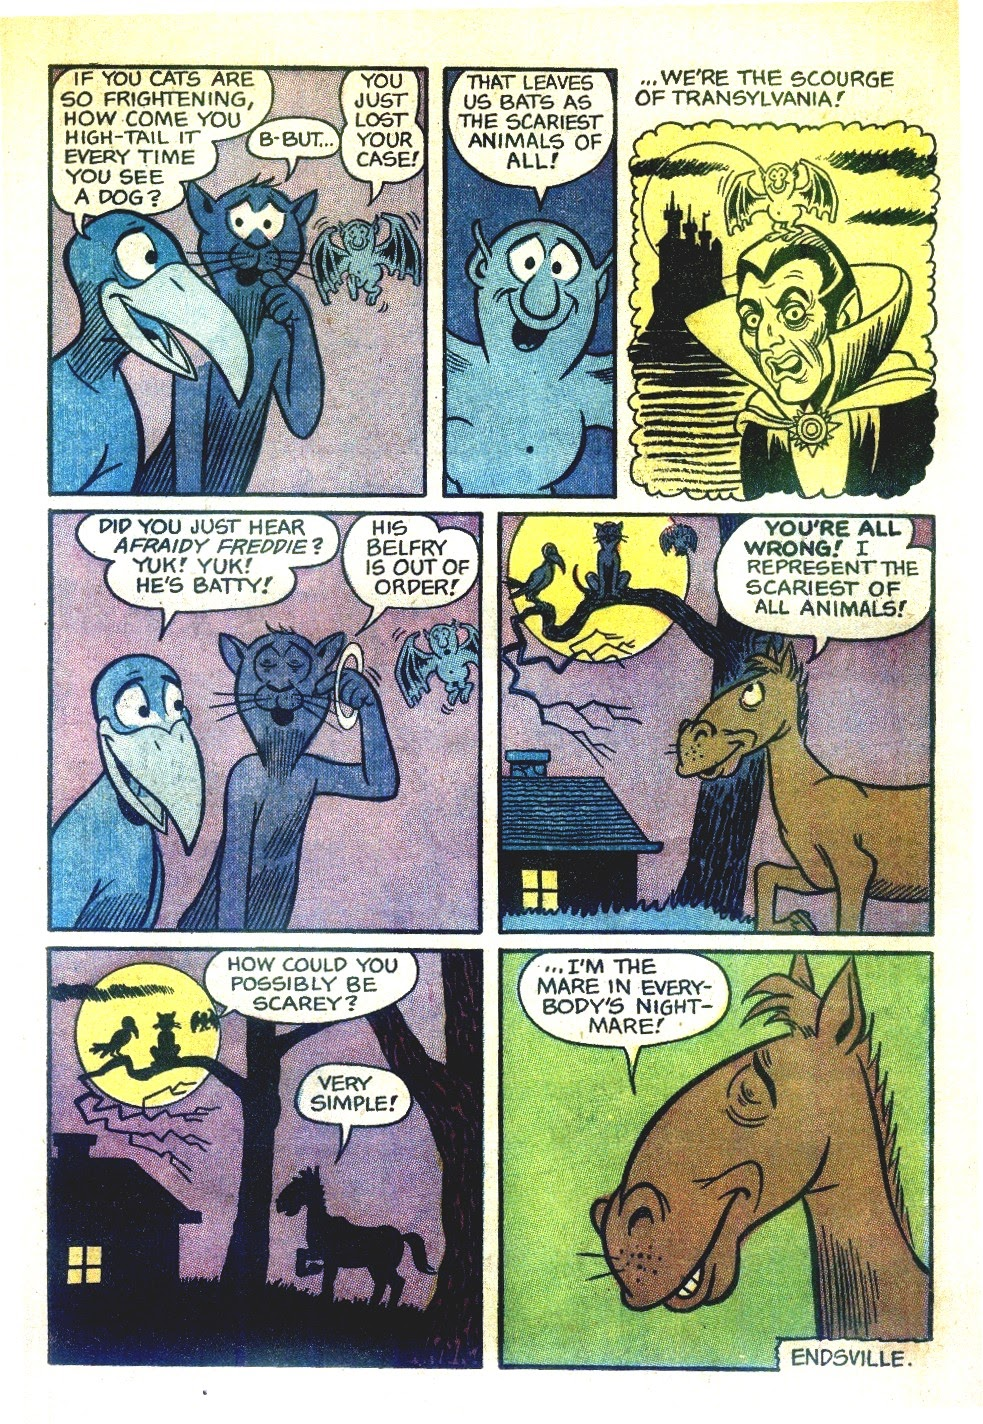 Read online Tales Calculated to Drive You Bats comic -  Issue #6 - 11